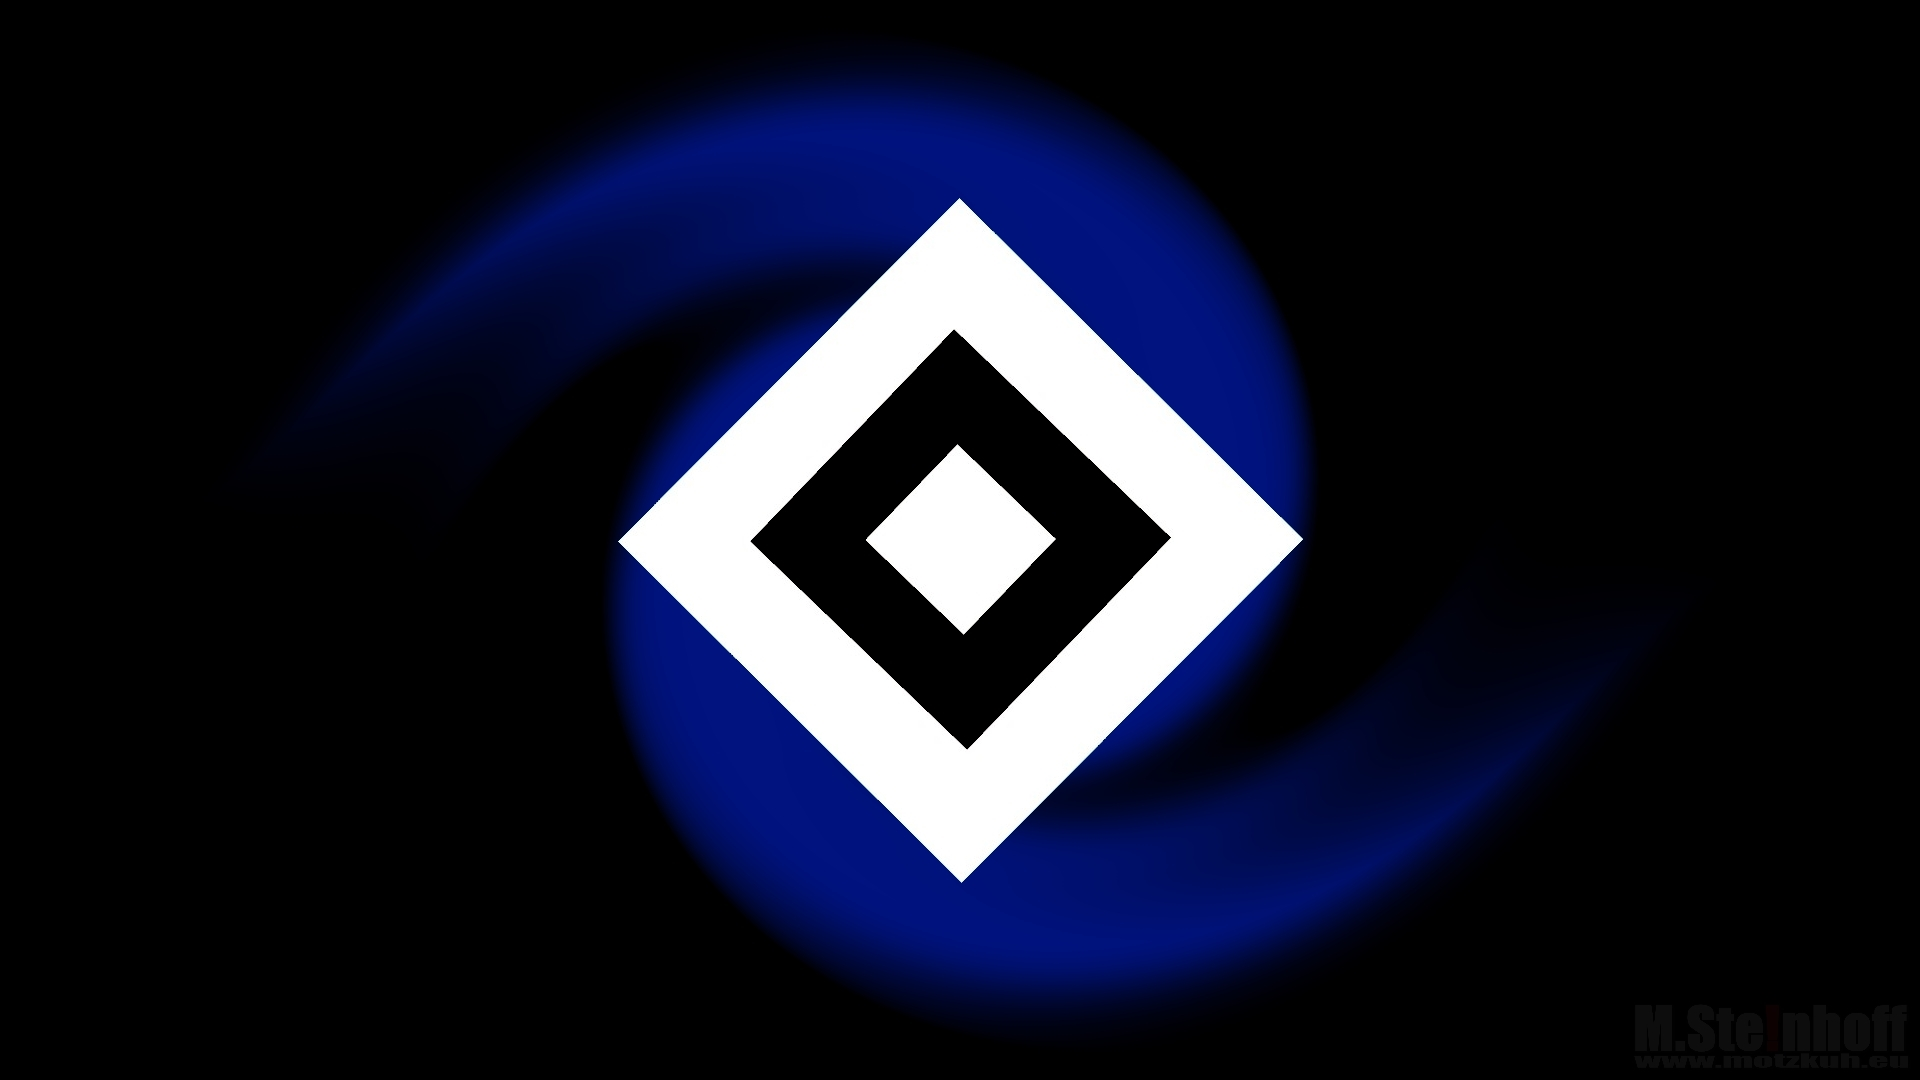 Hsv Wallpaper Pictures to pin on Pinterest